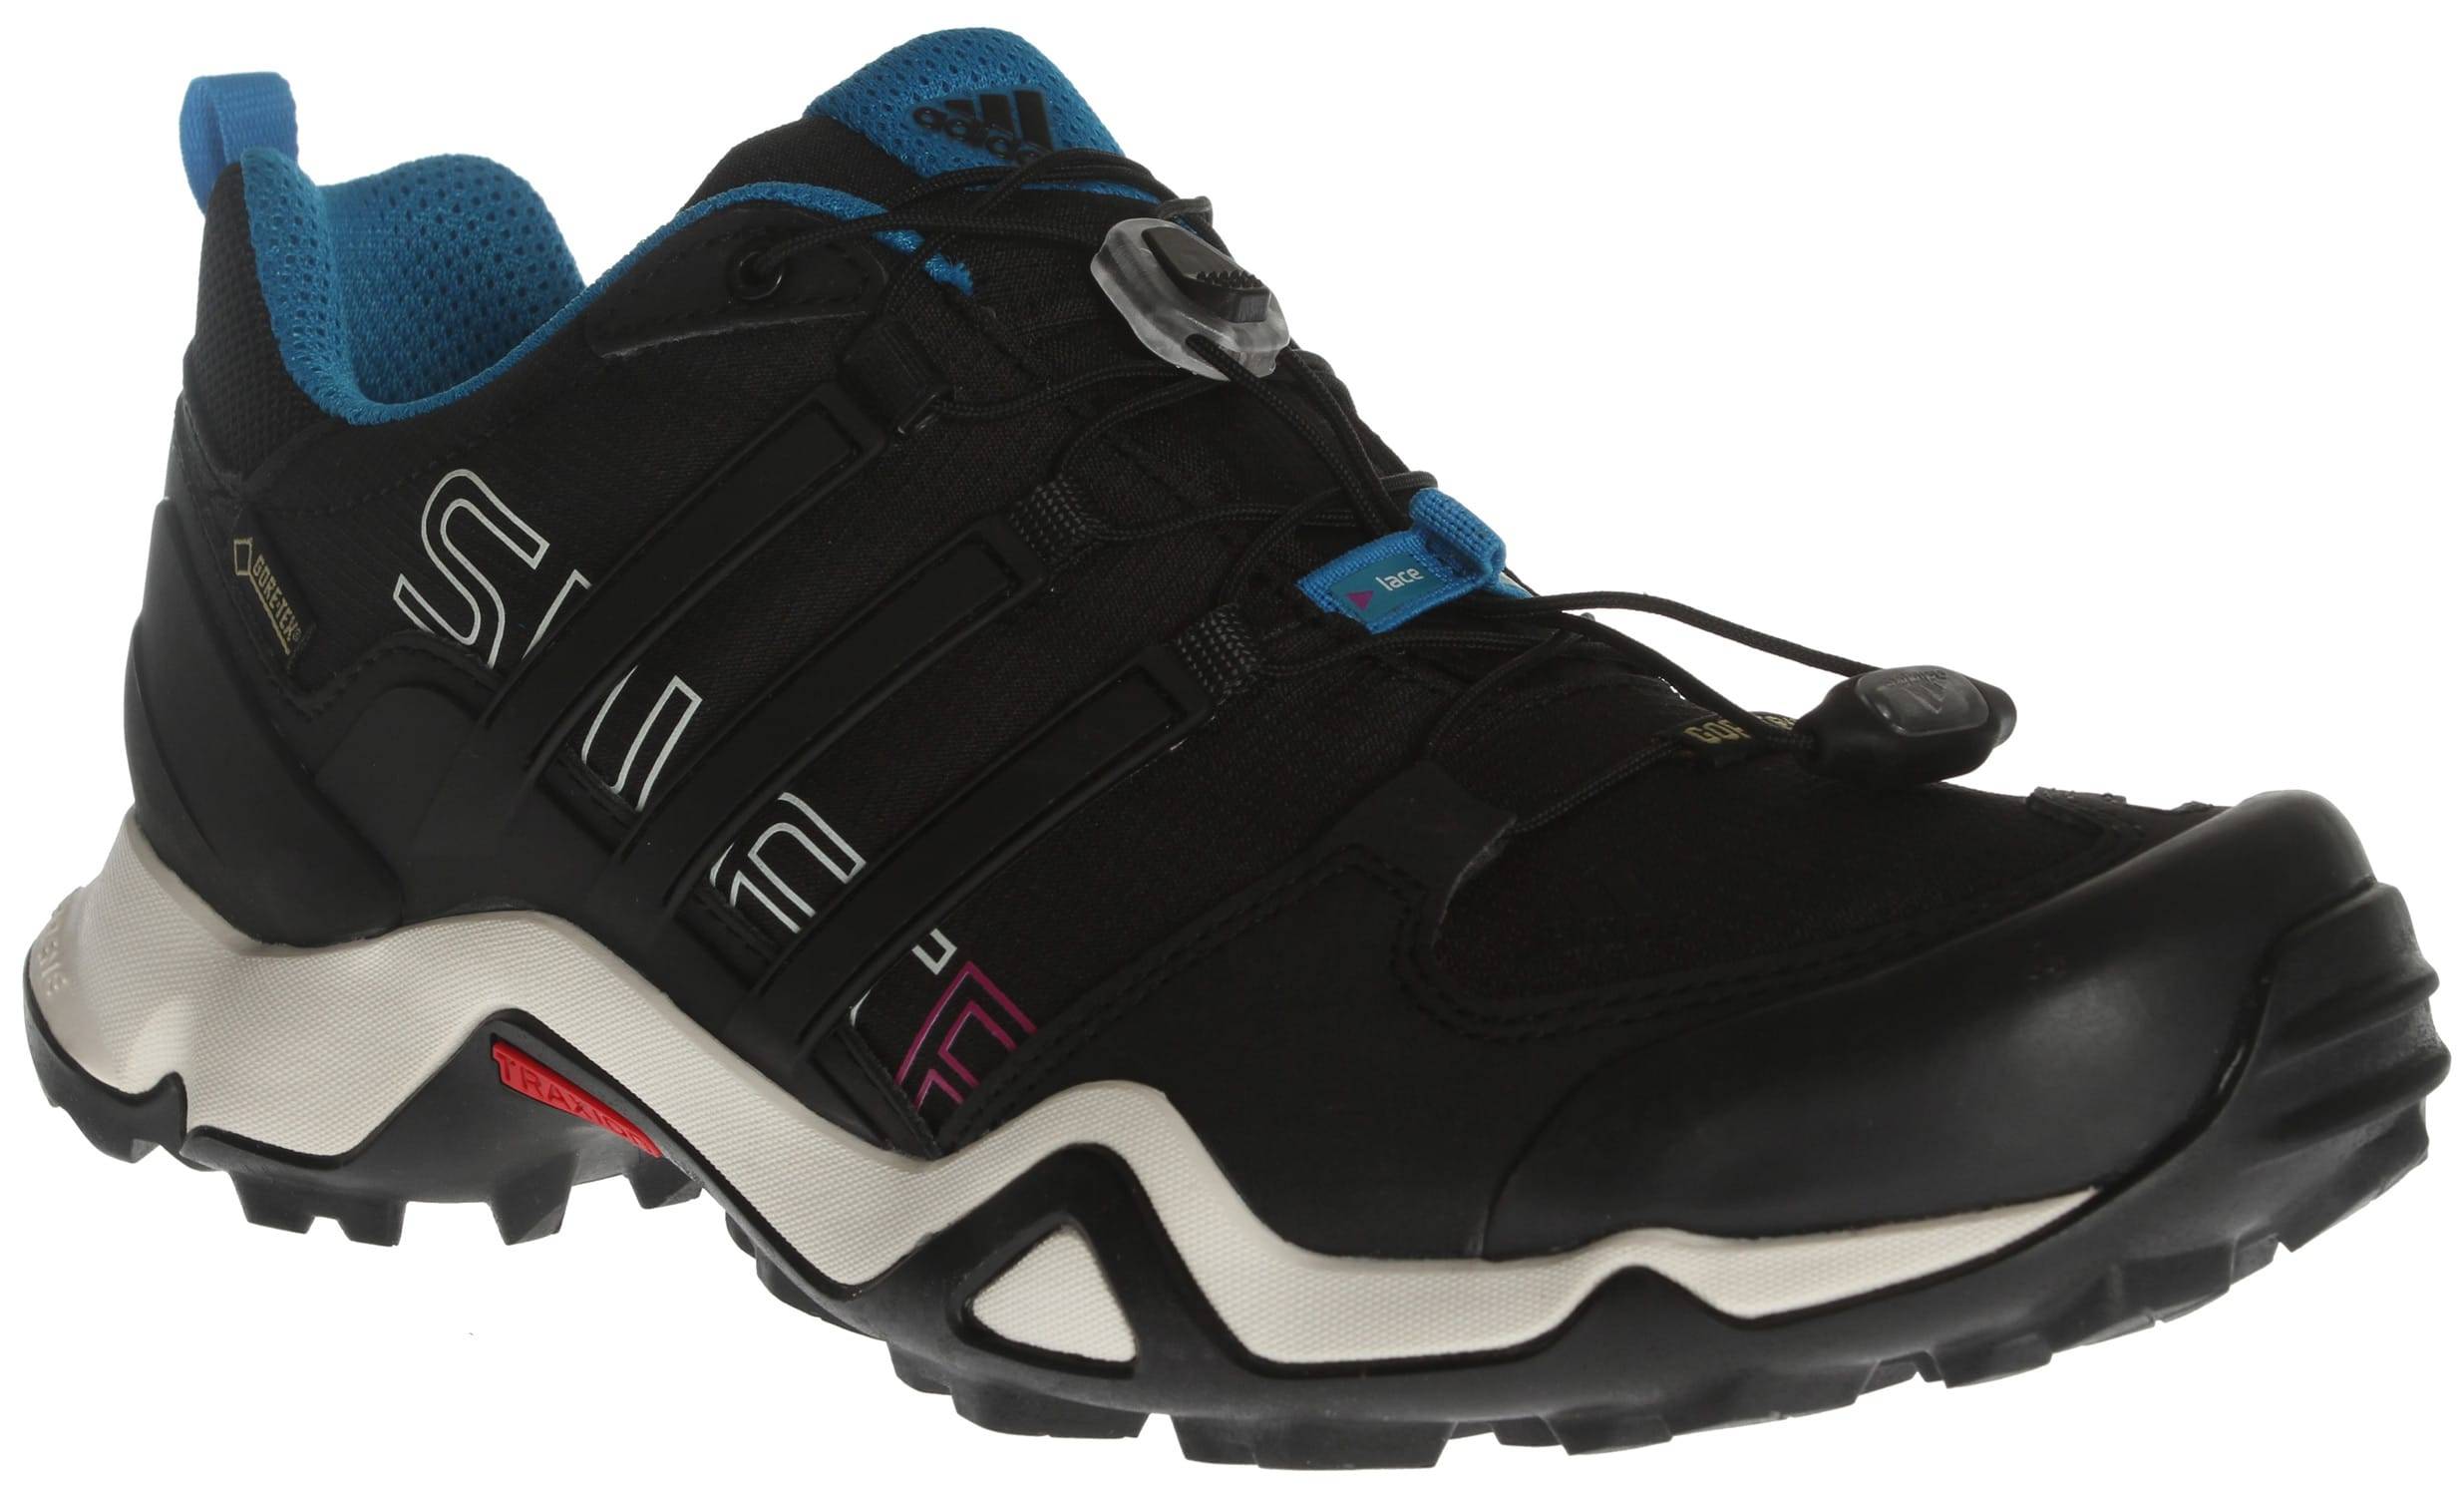 on sale adidas terrex swift r gtx hiking shoes womens up. Black Bedroom Furniture Sets. Home Design Ideas